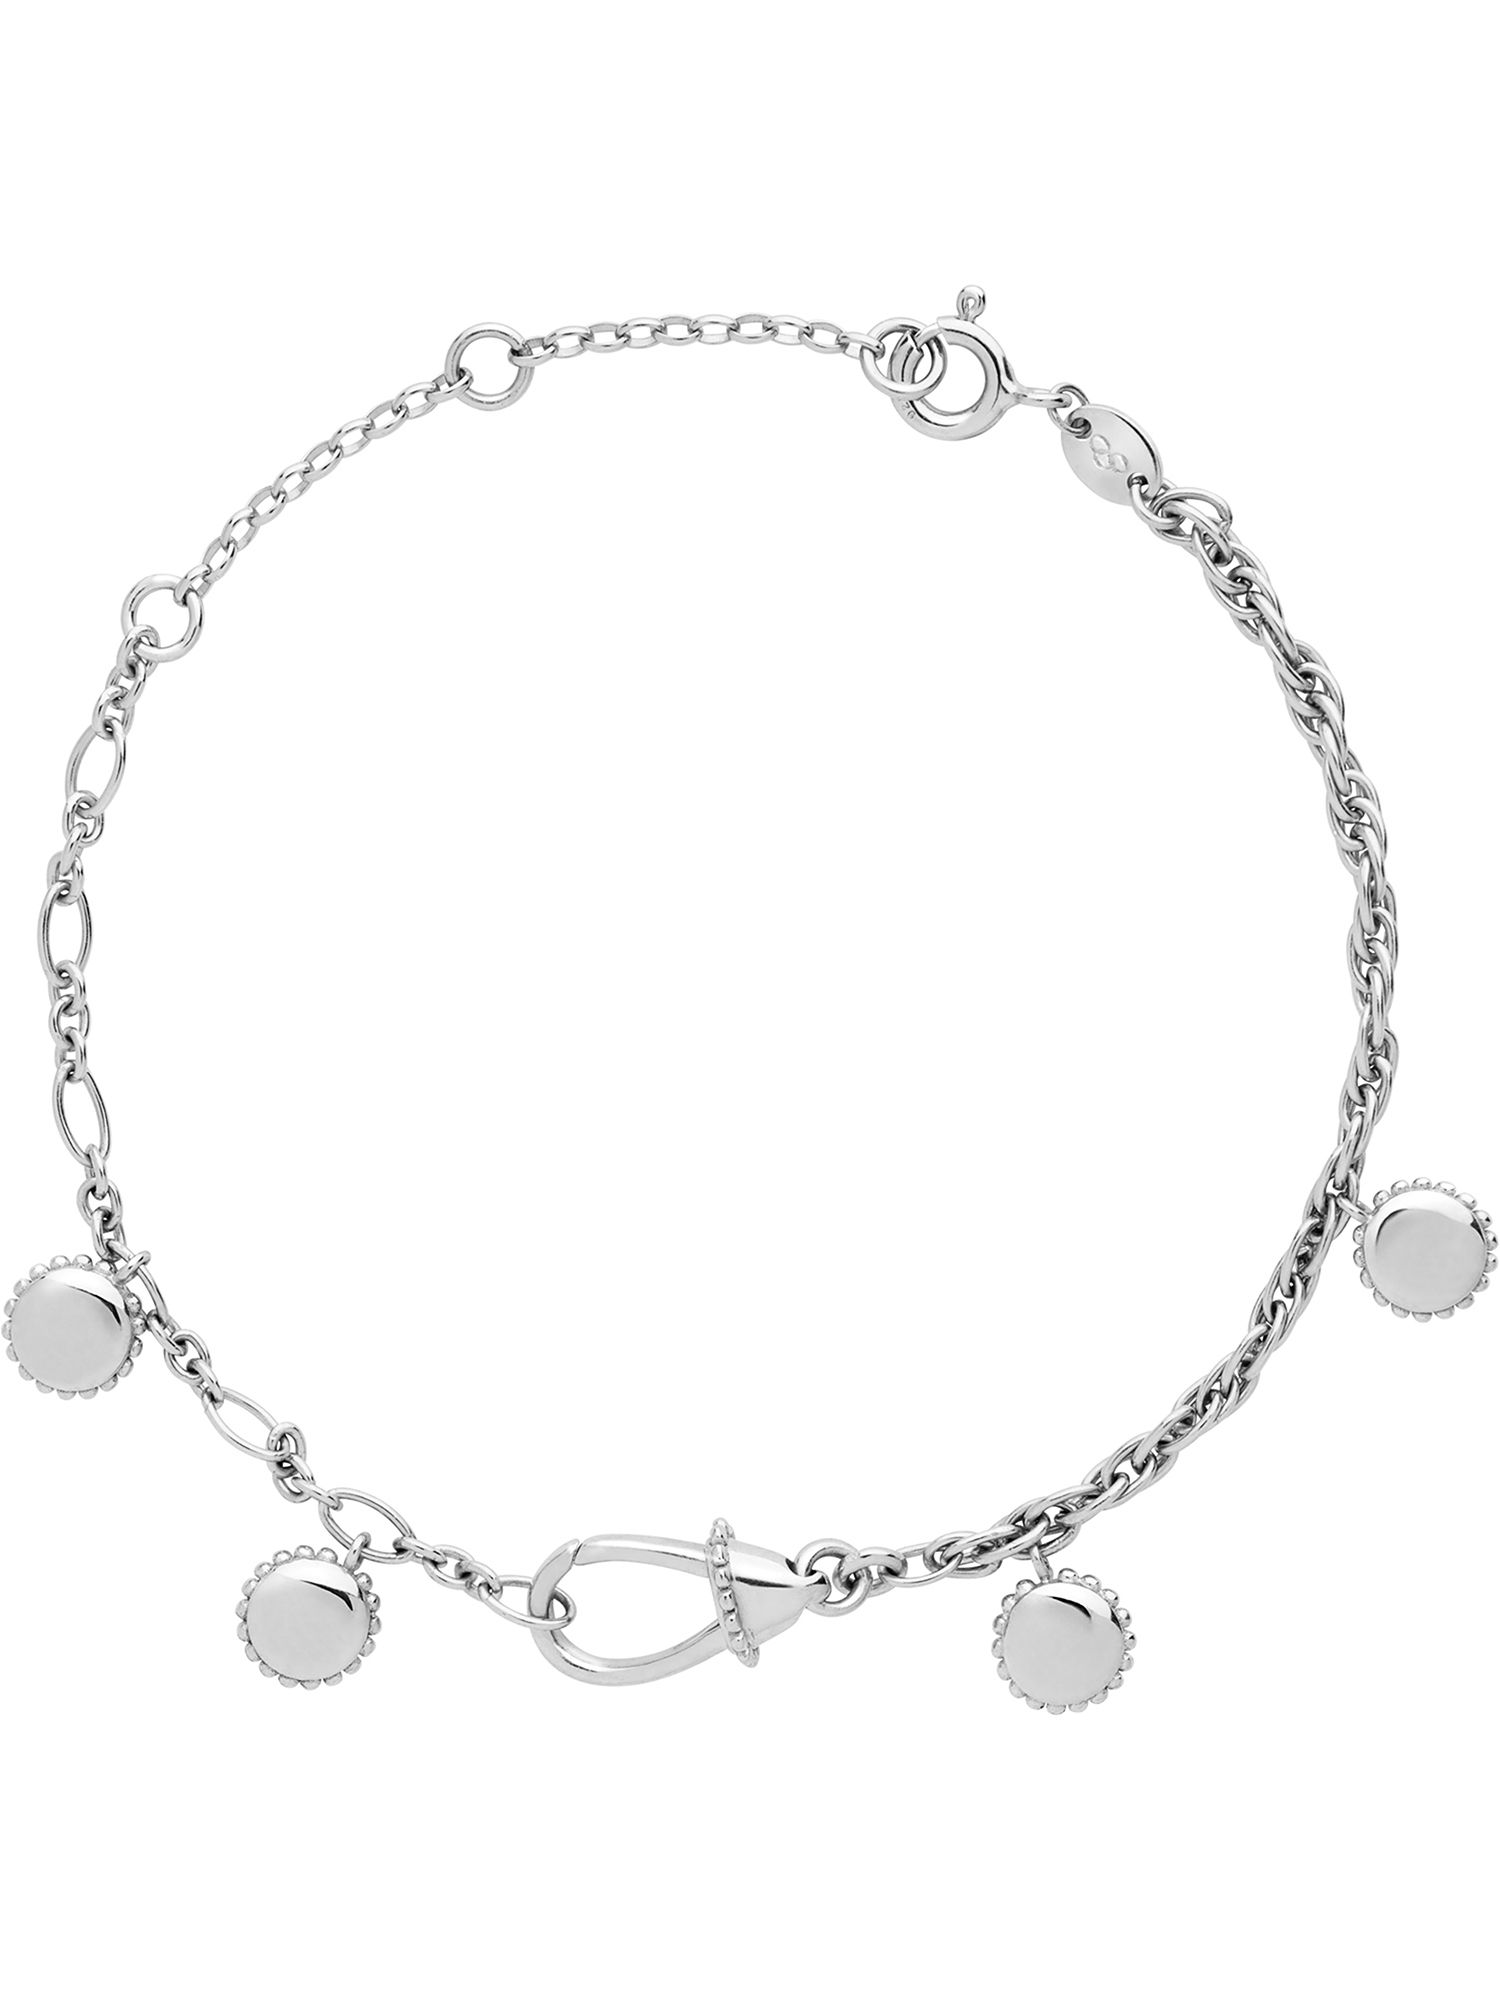 Links of London Amulet silver carabiner bracelet, N/A